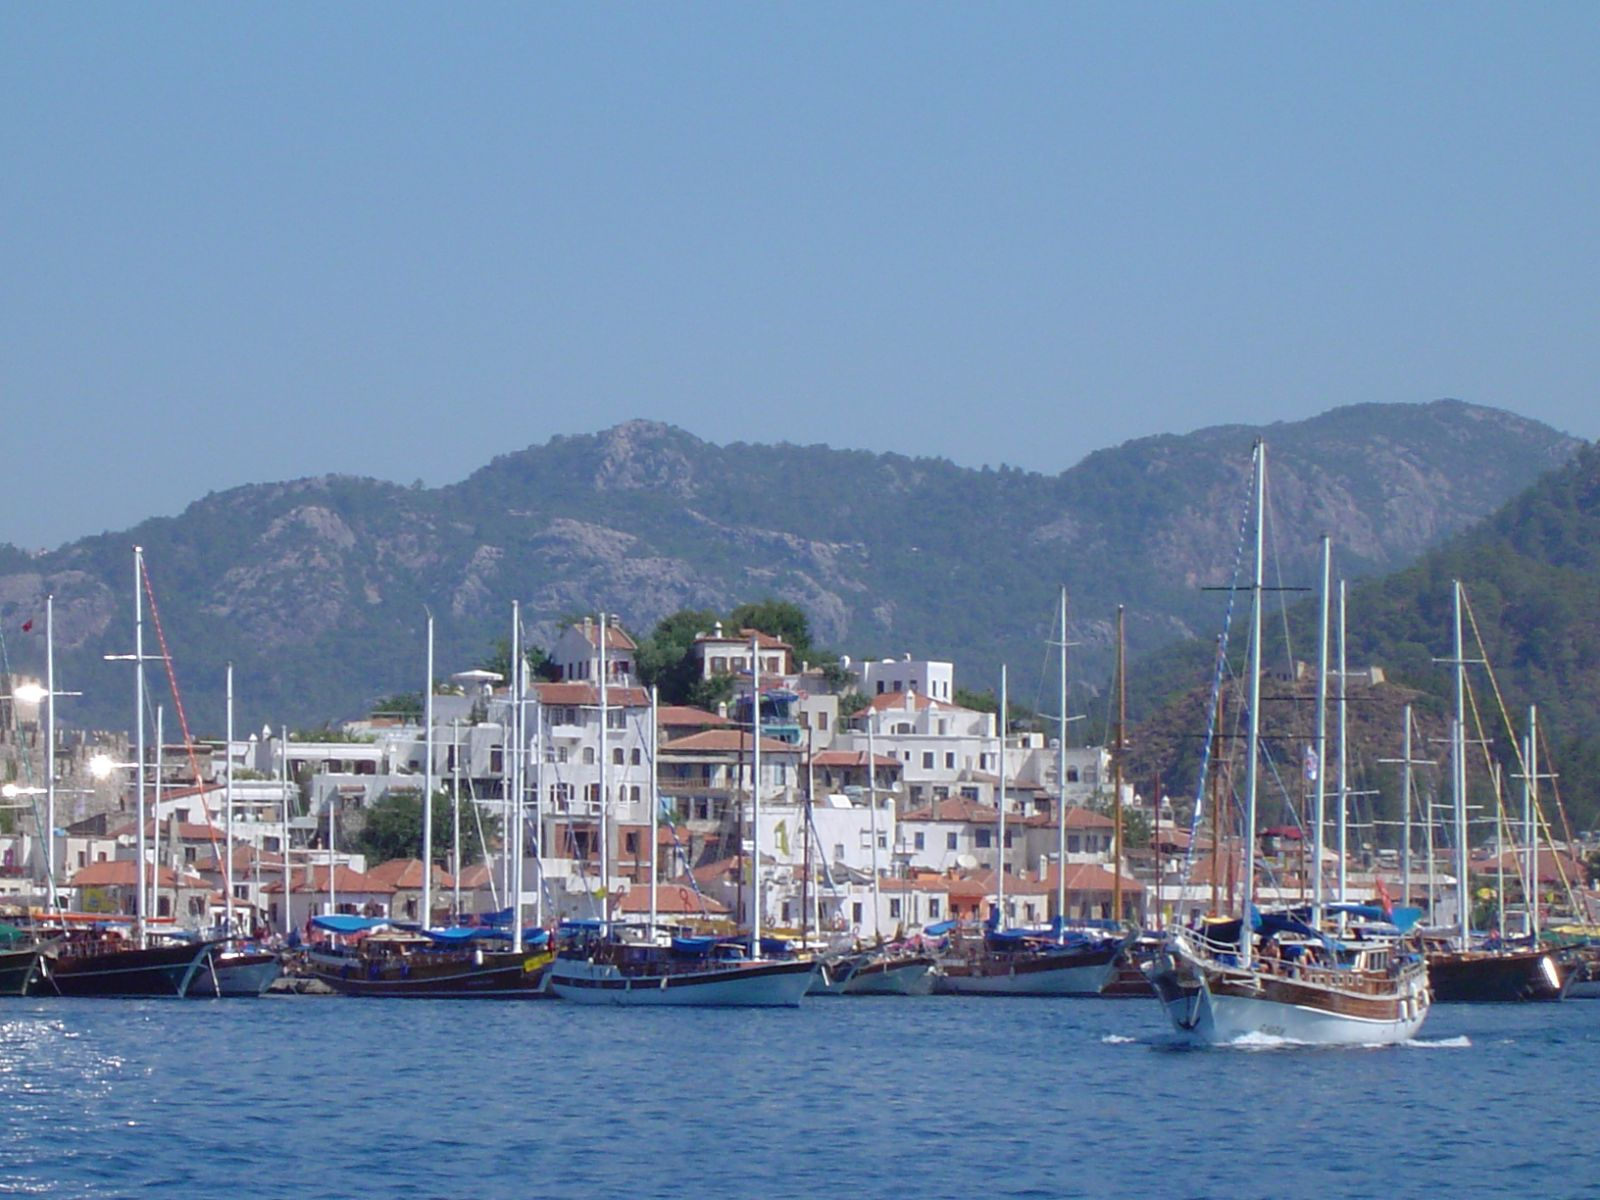 kos-stad, top 10 accommodaties, griekenland